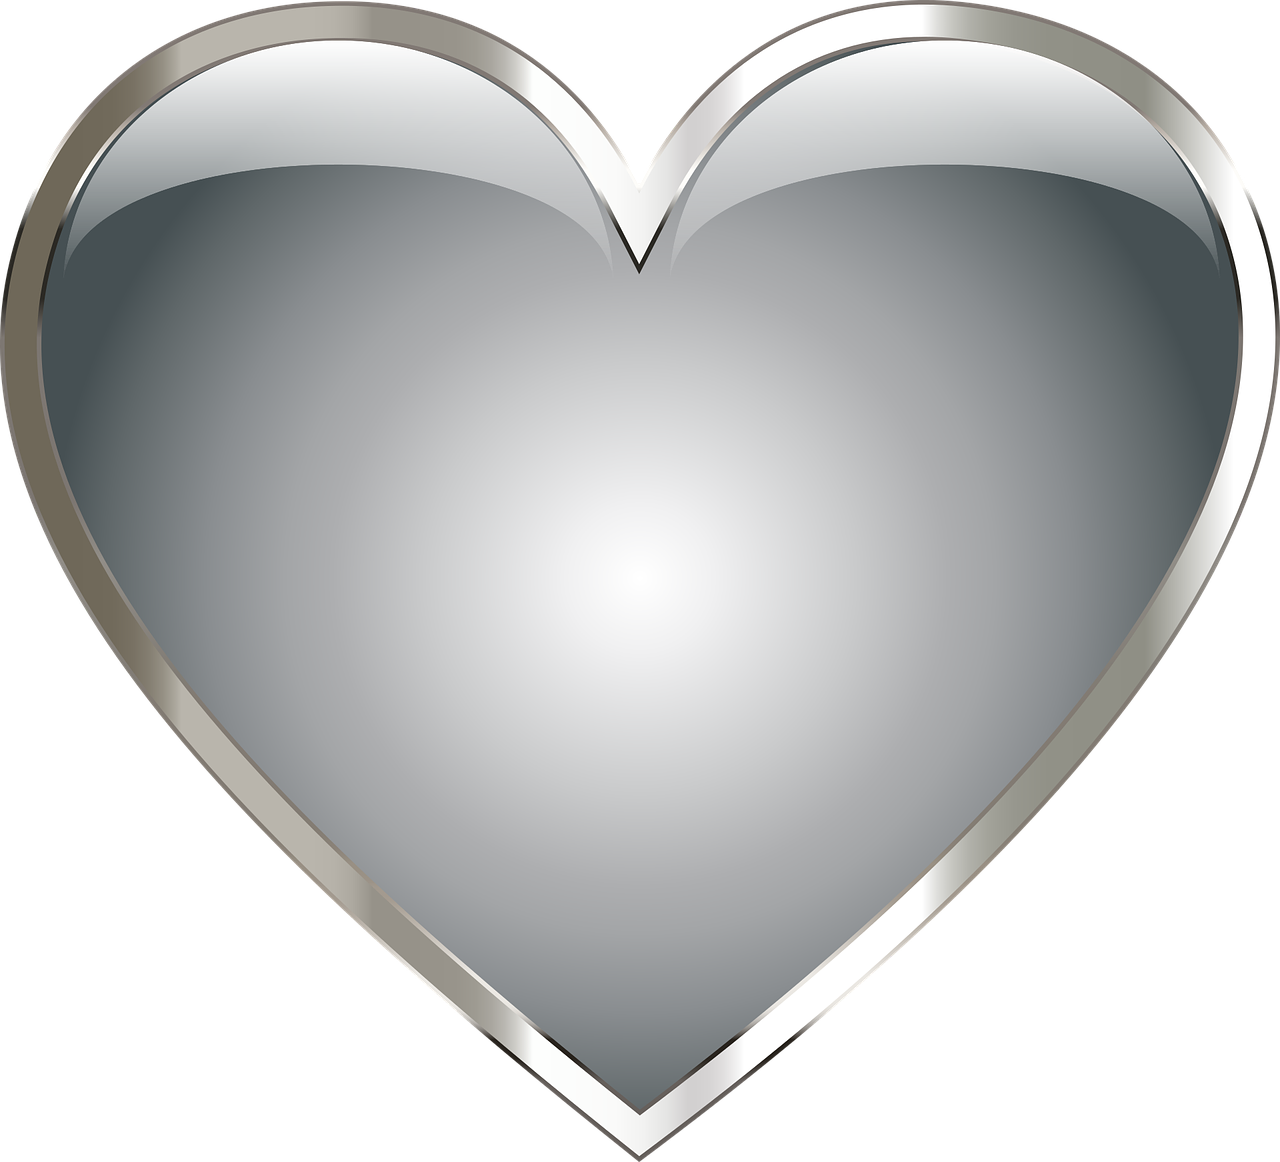 Hearts clipart watermelon. Stainless steel metal heart